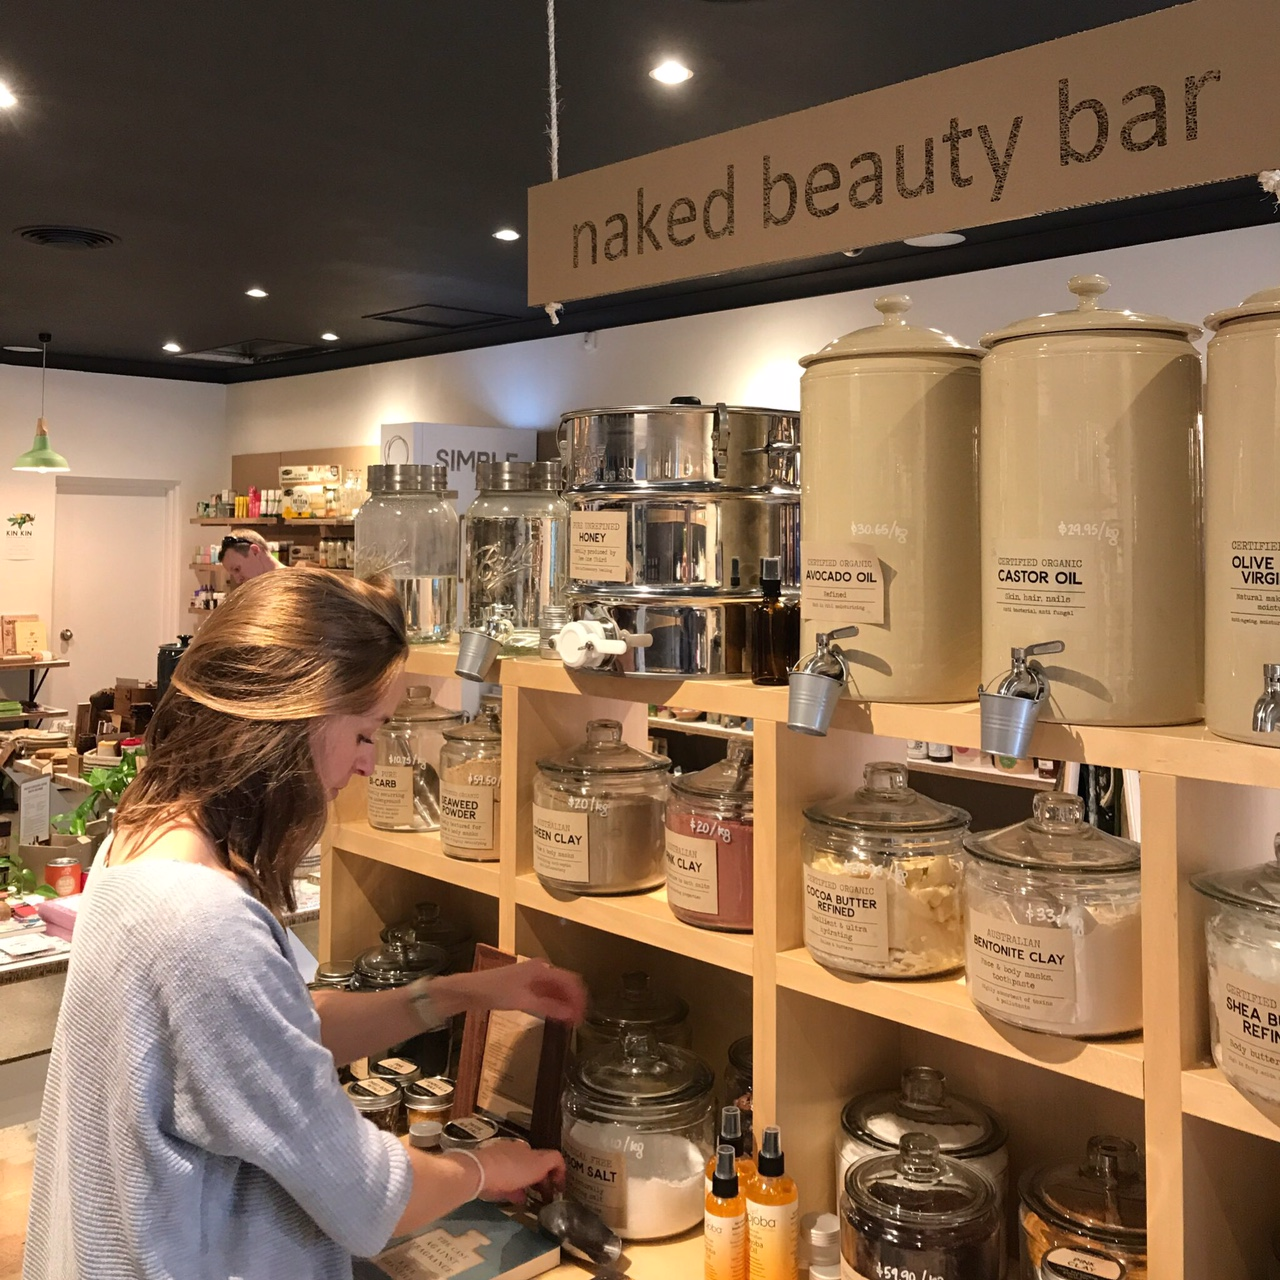 DIY Beauty With Biome's Naked Beauty Bar